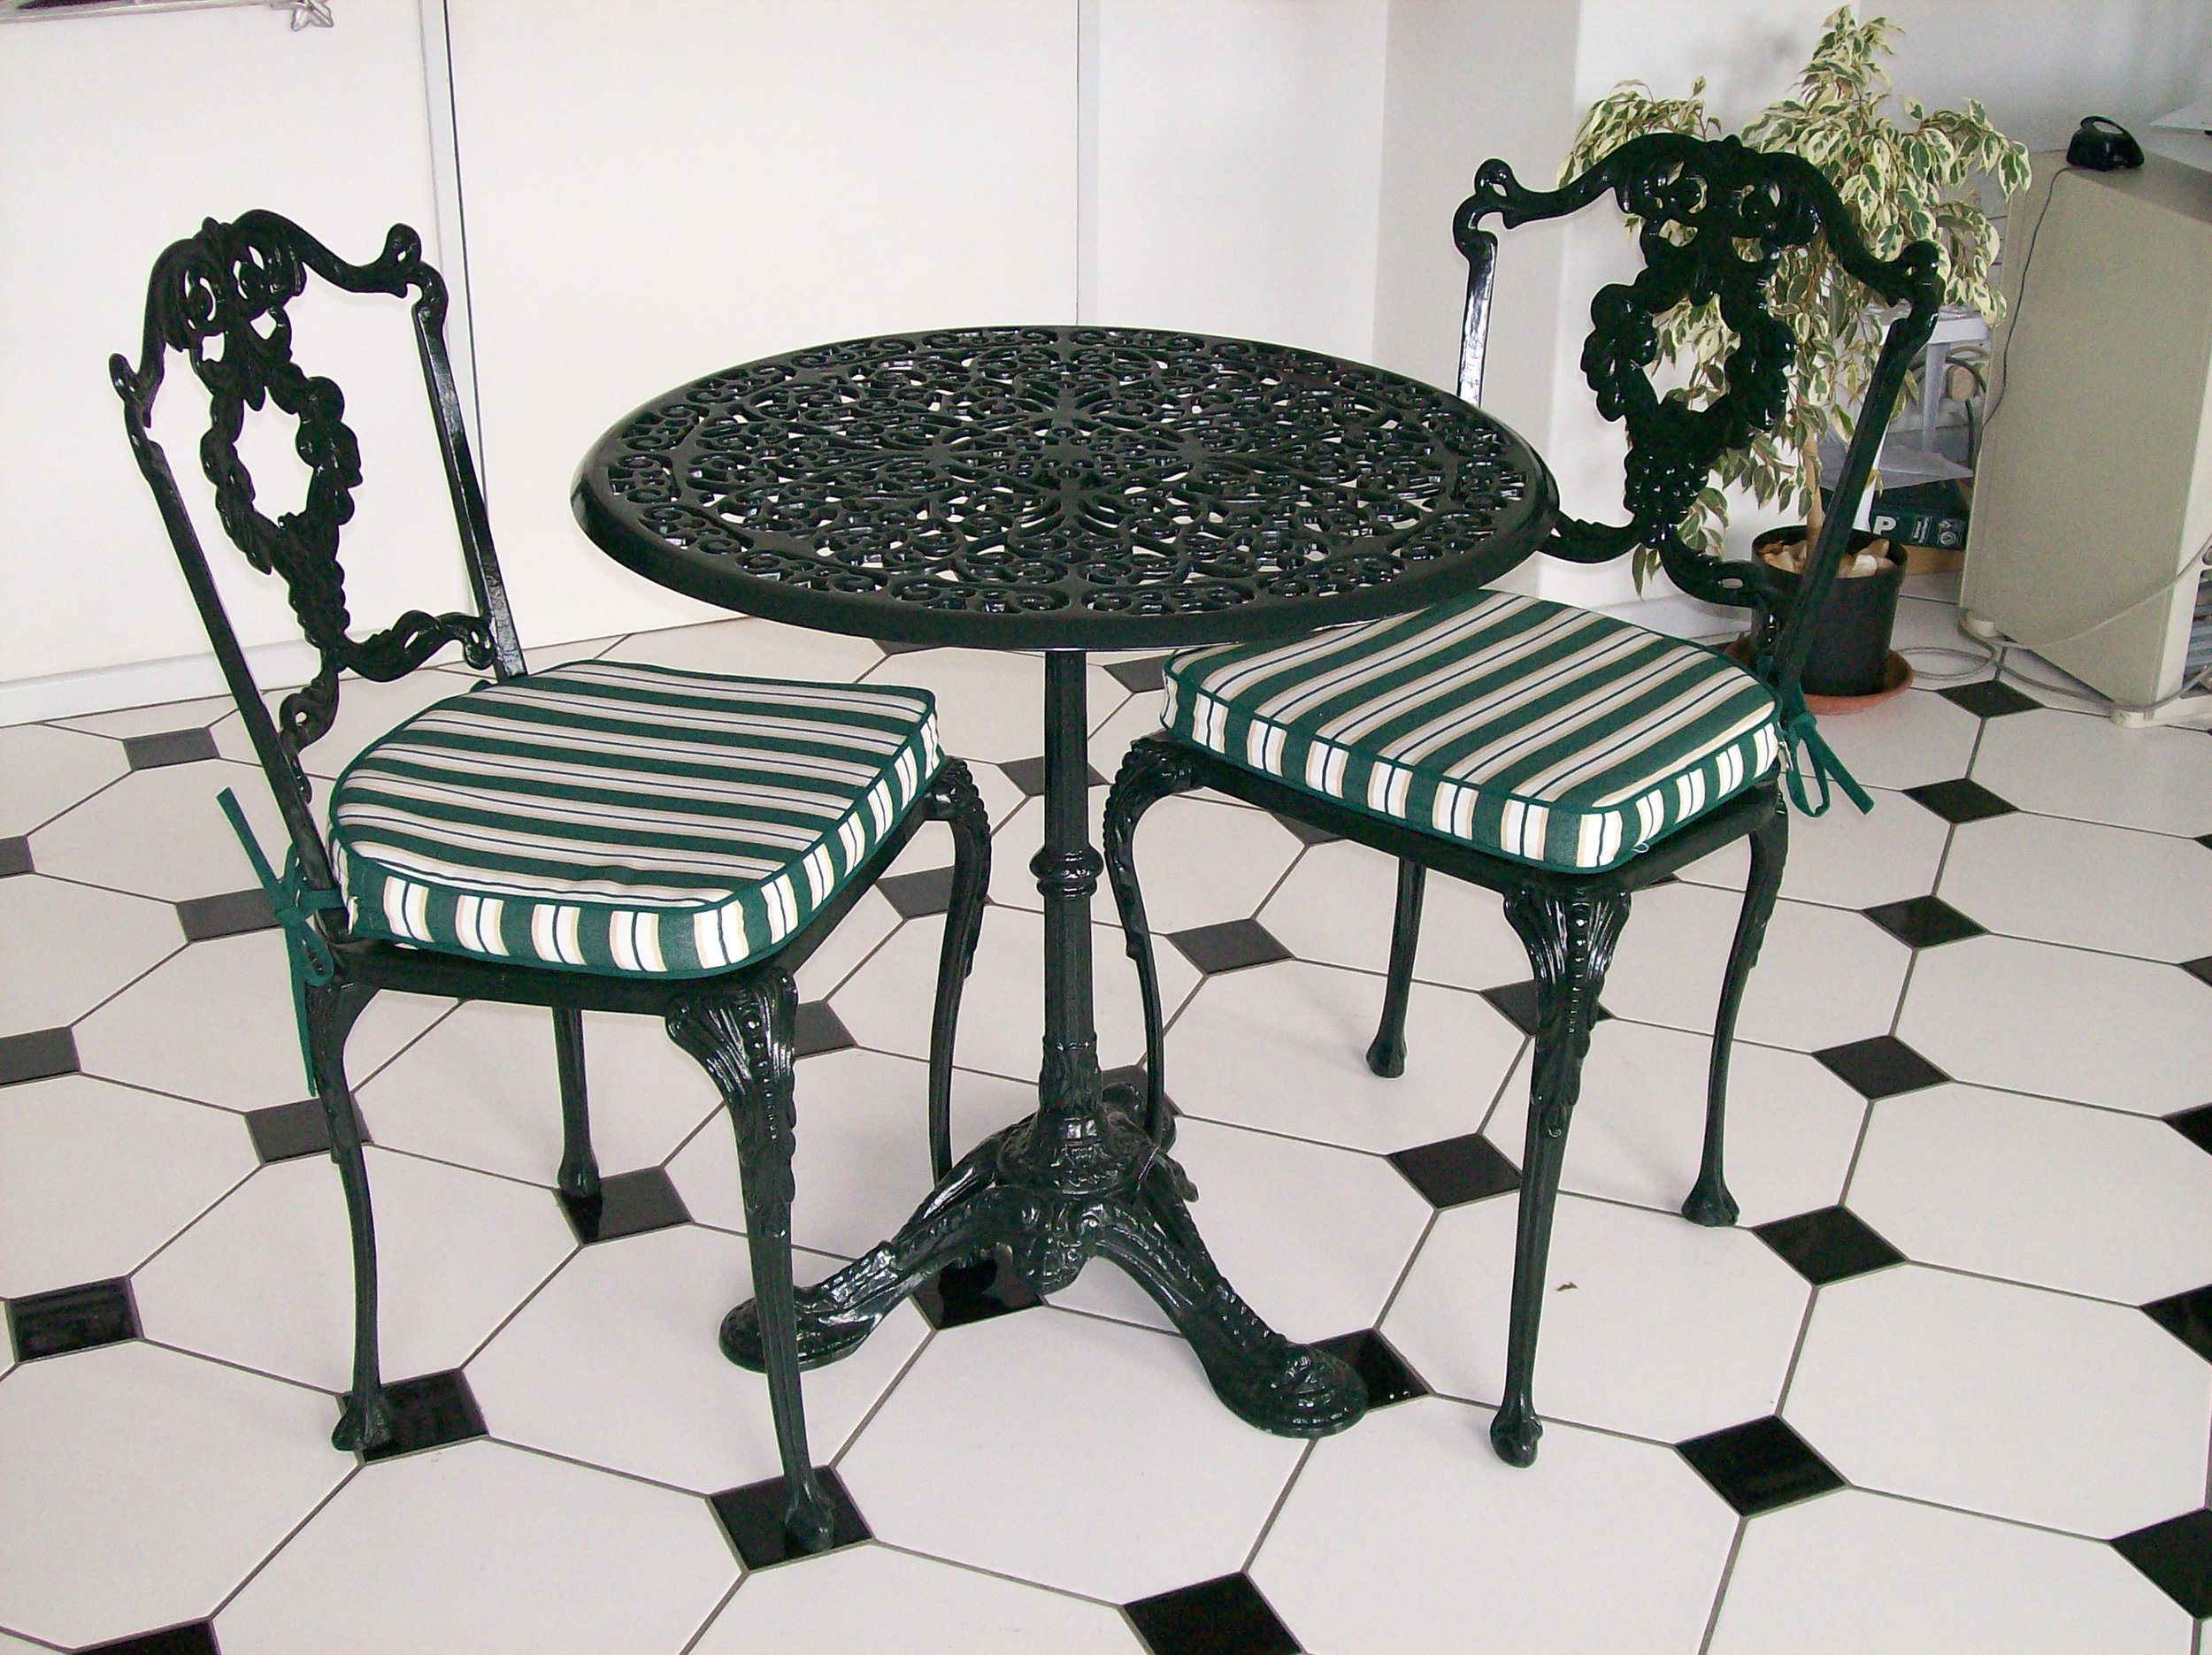 70cm Pedestal table with Laurel diner chairs